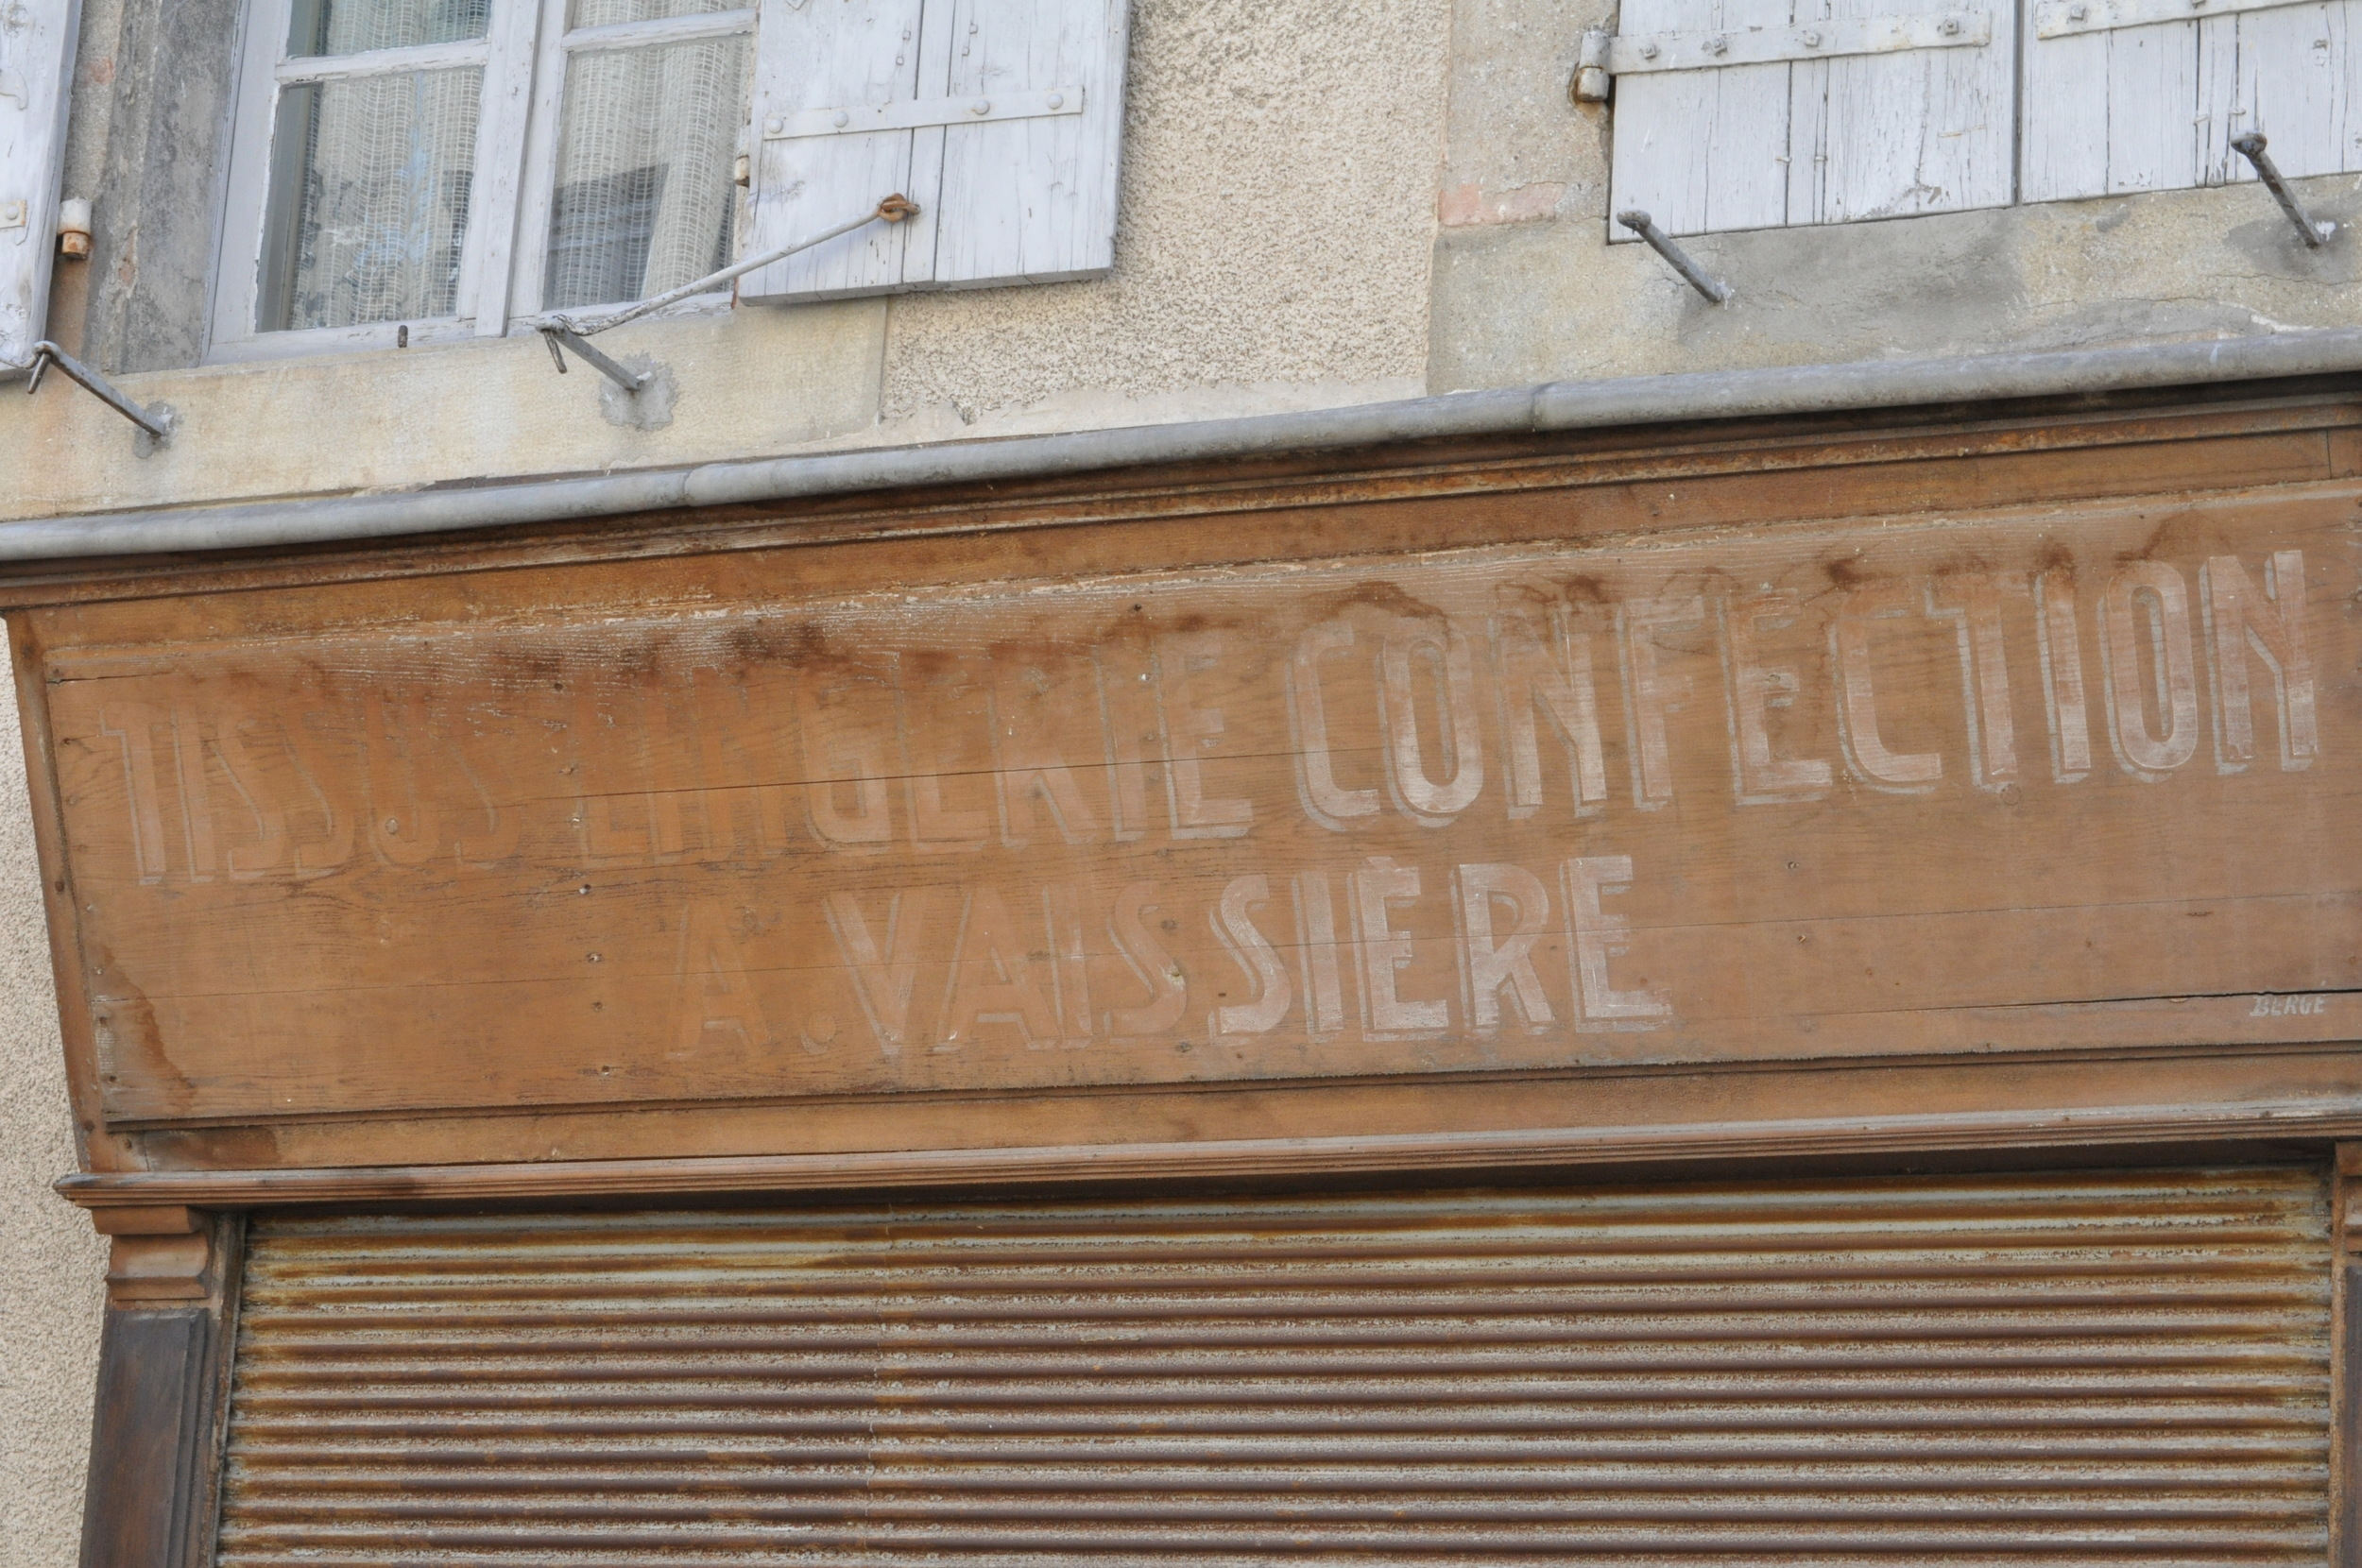 old confectionary shop. avignon, france.